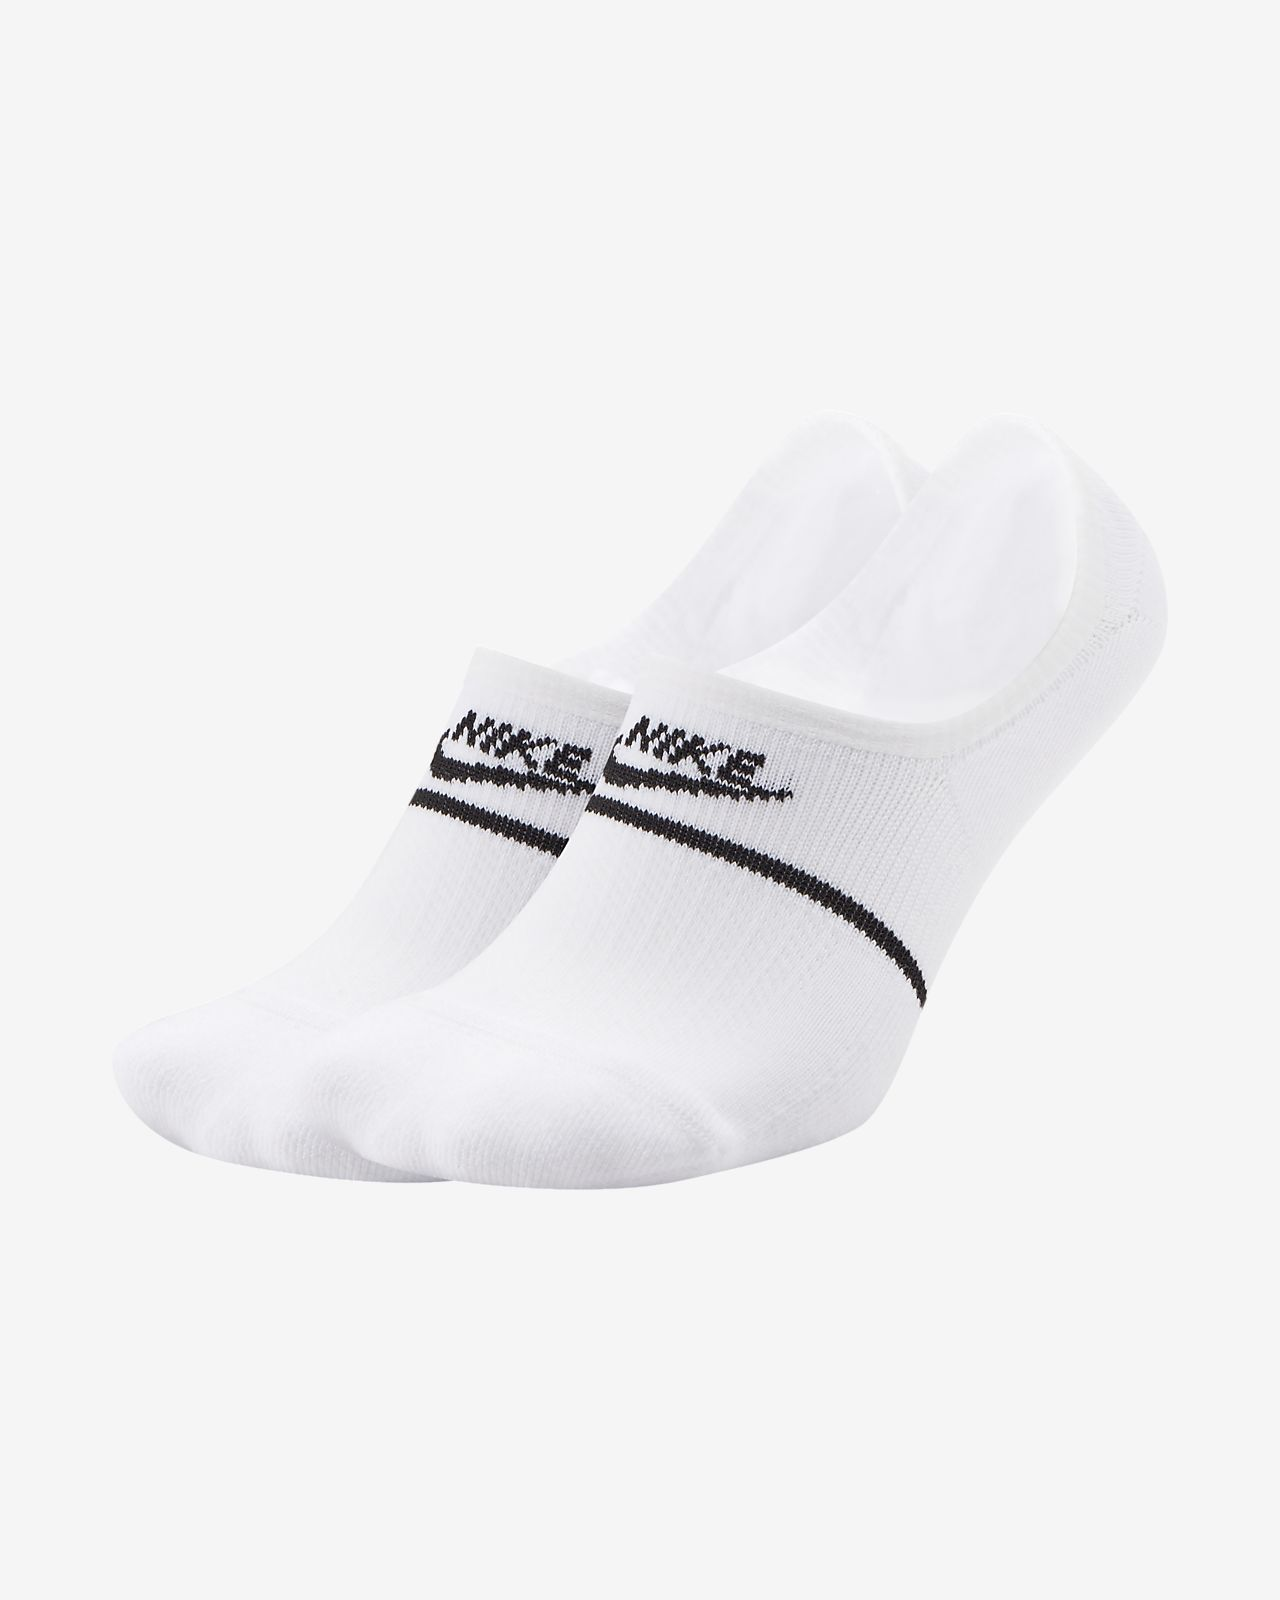 Nike SNKR Sox Essential 隱形襪 (2 雙)